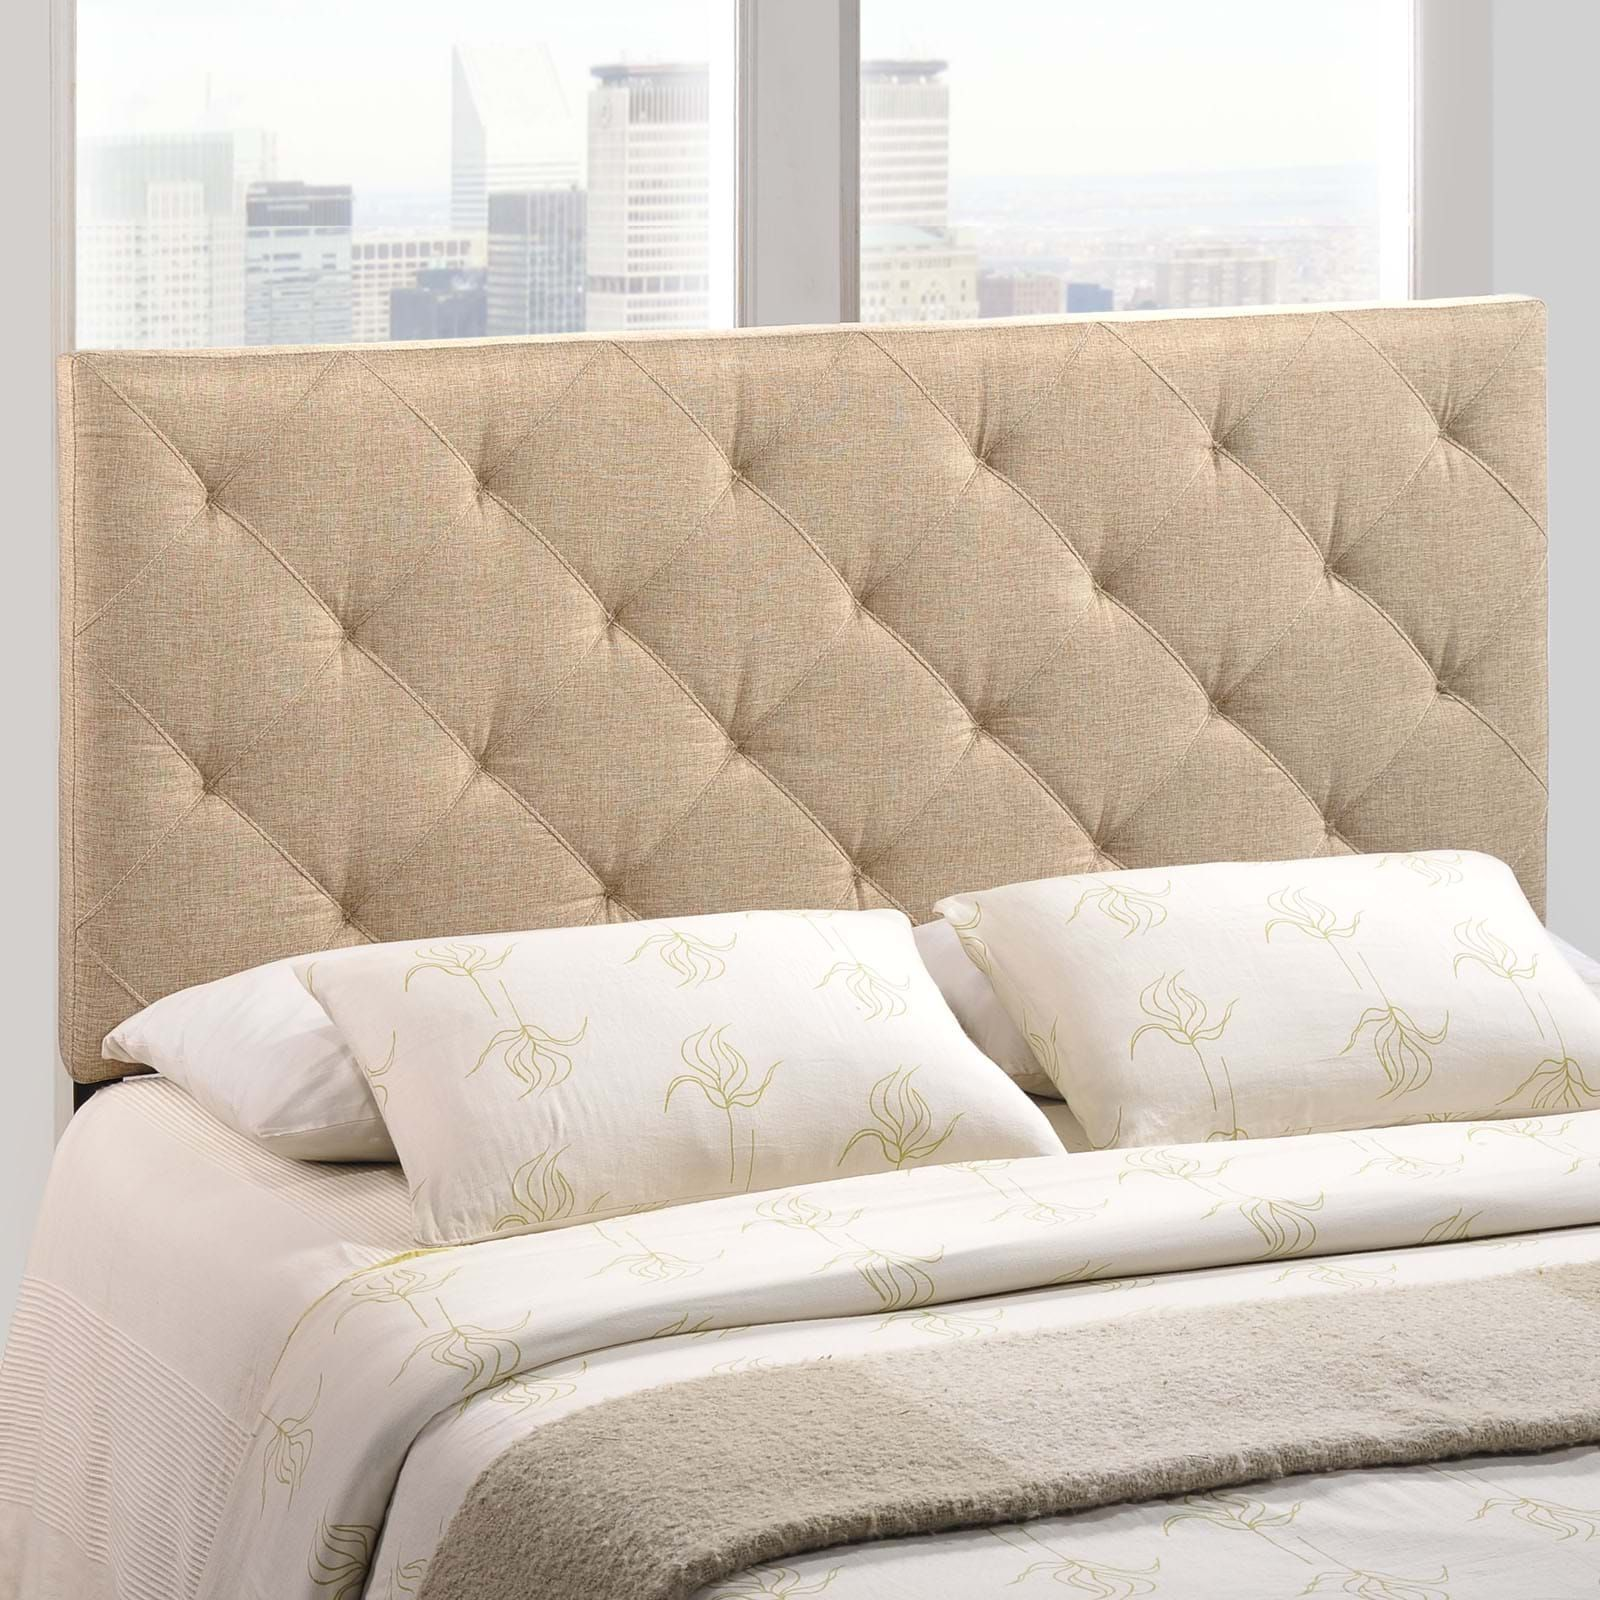 Theodore Queen Fabric Headboard, Beige  The Versatility Of This